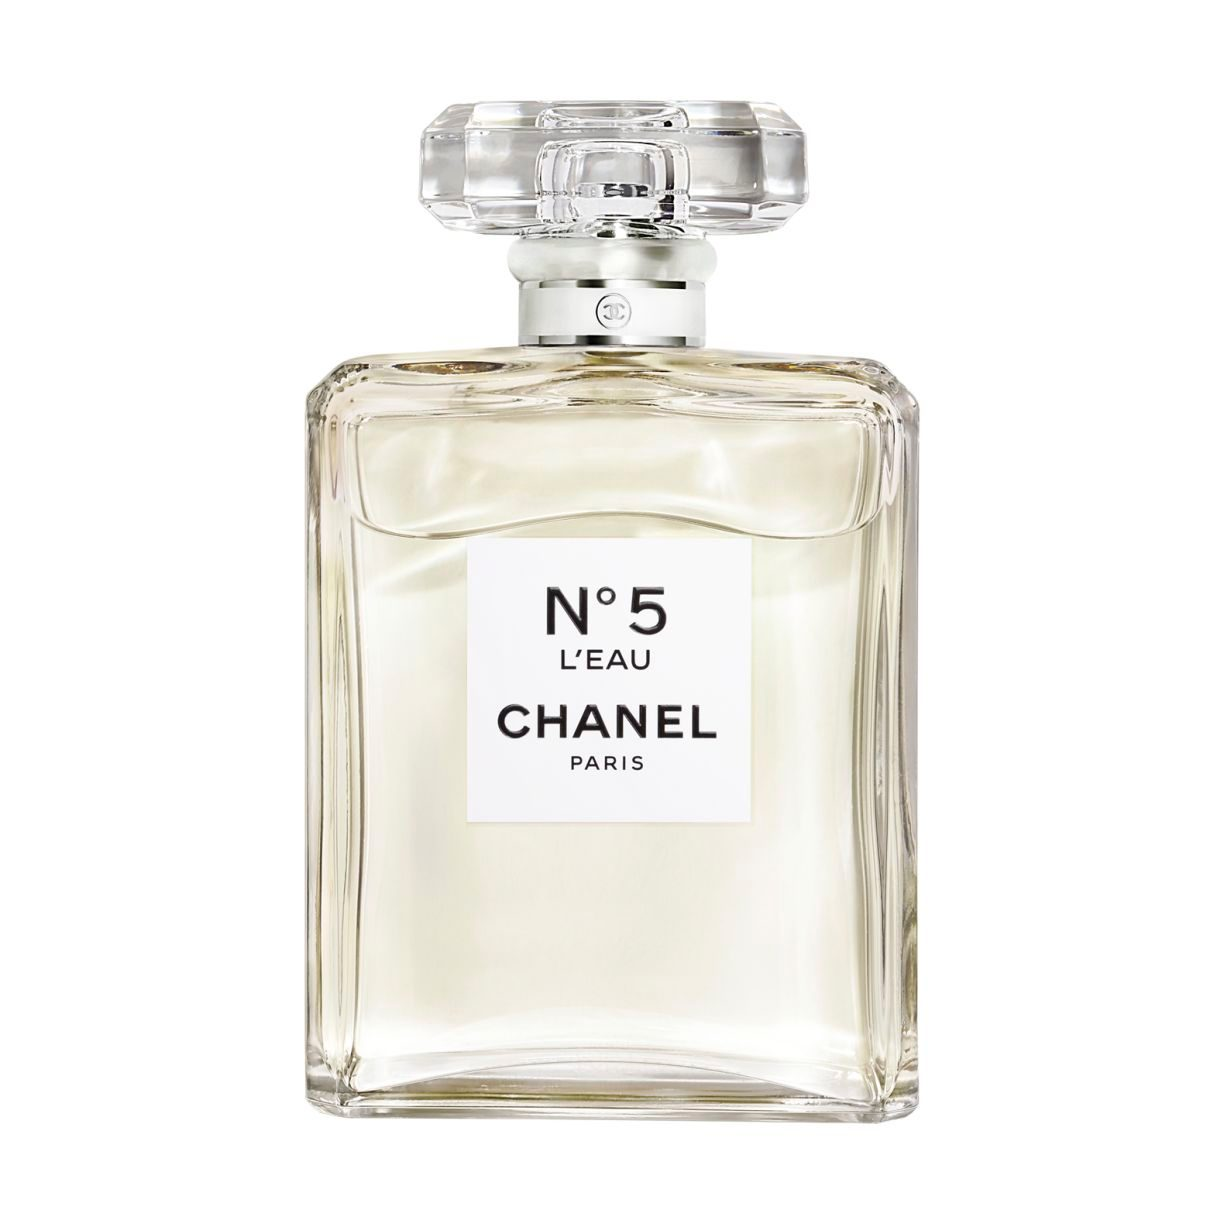 N°5 L'EAU EAU DE TOILETTE SPRAY 100ml